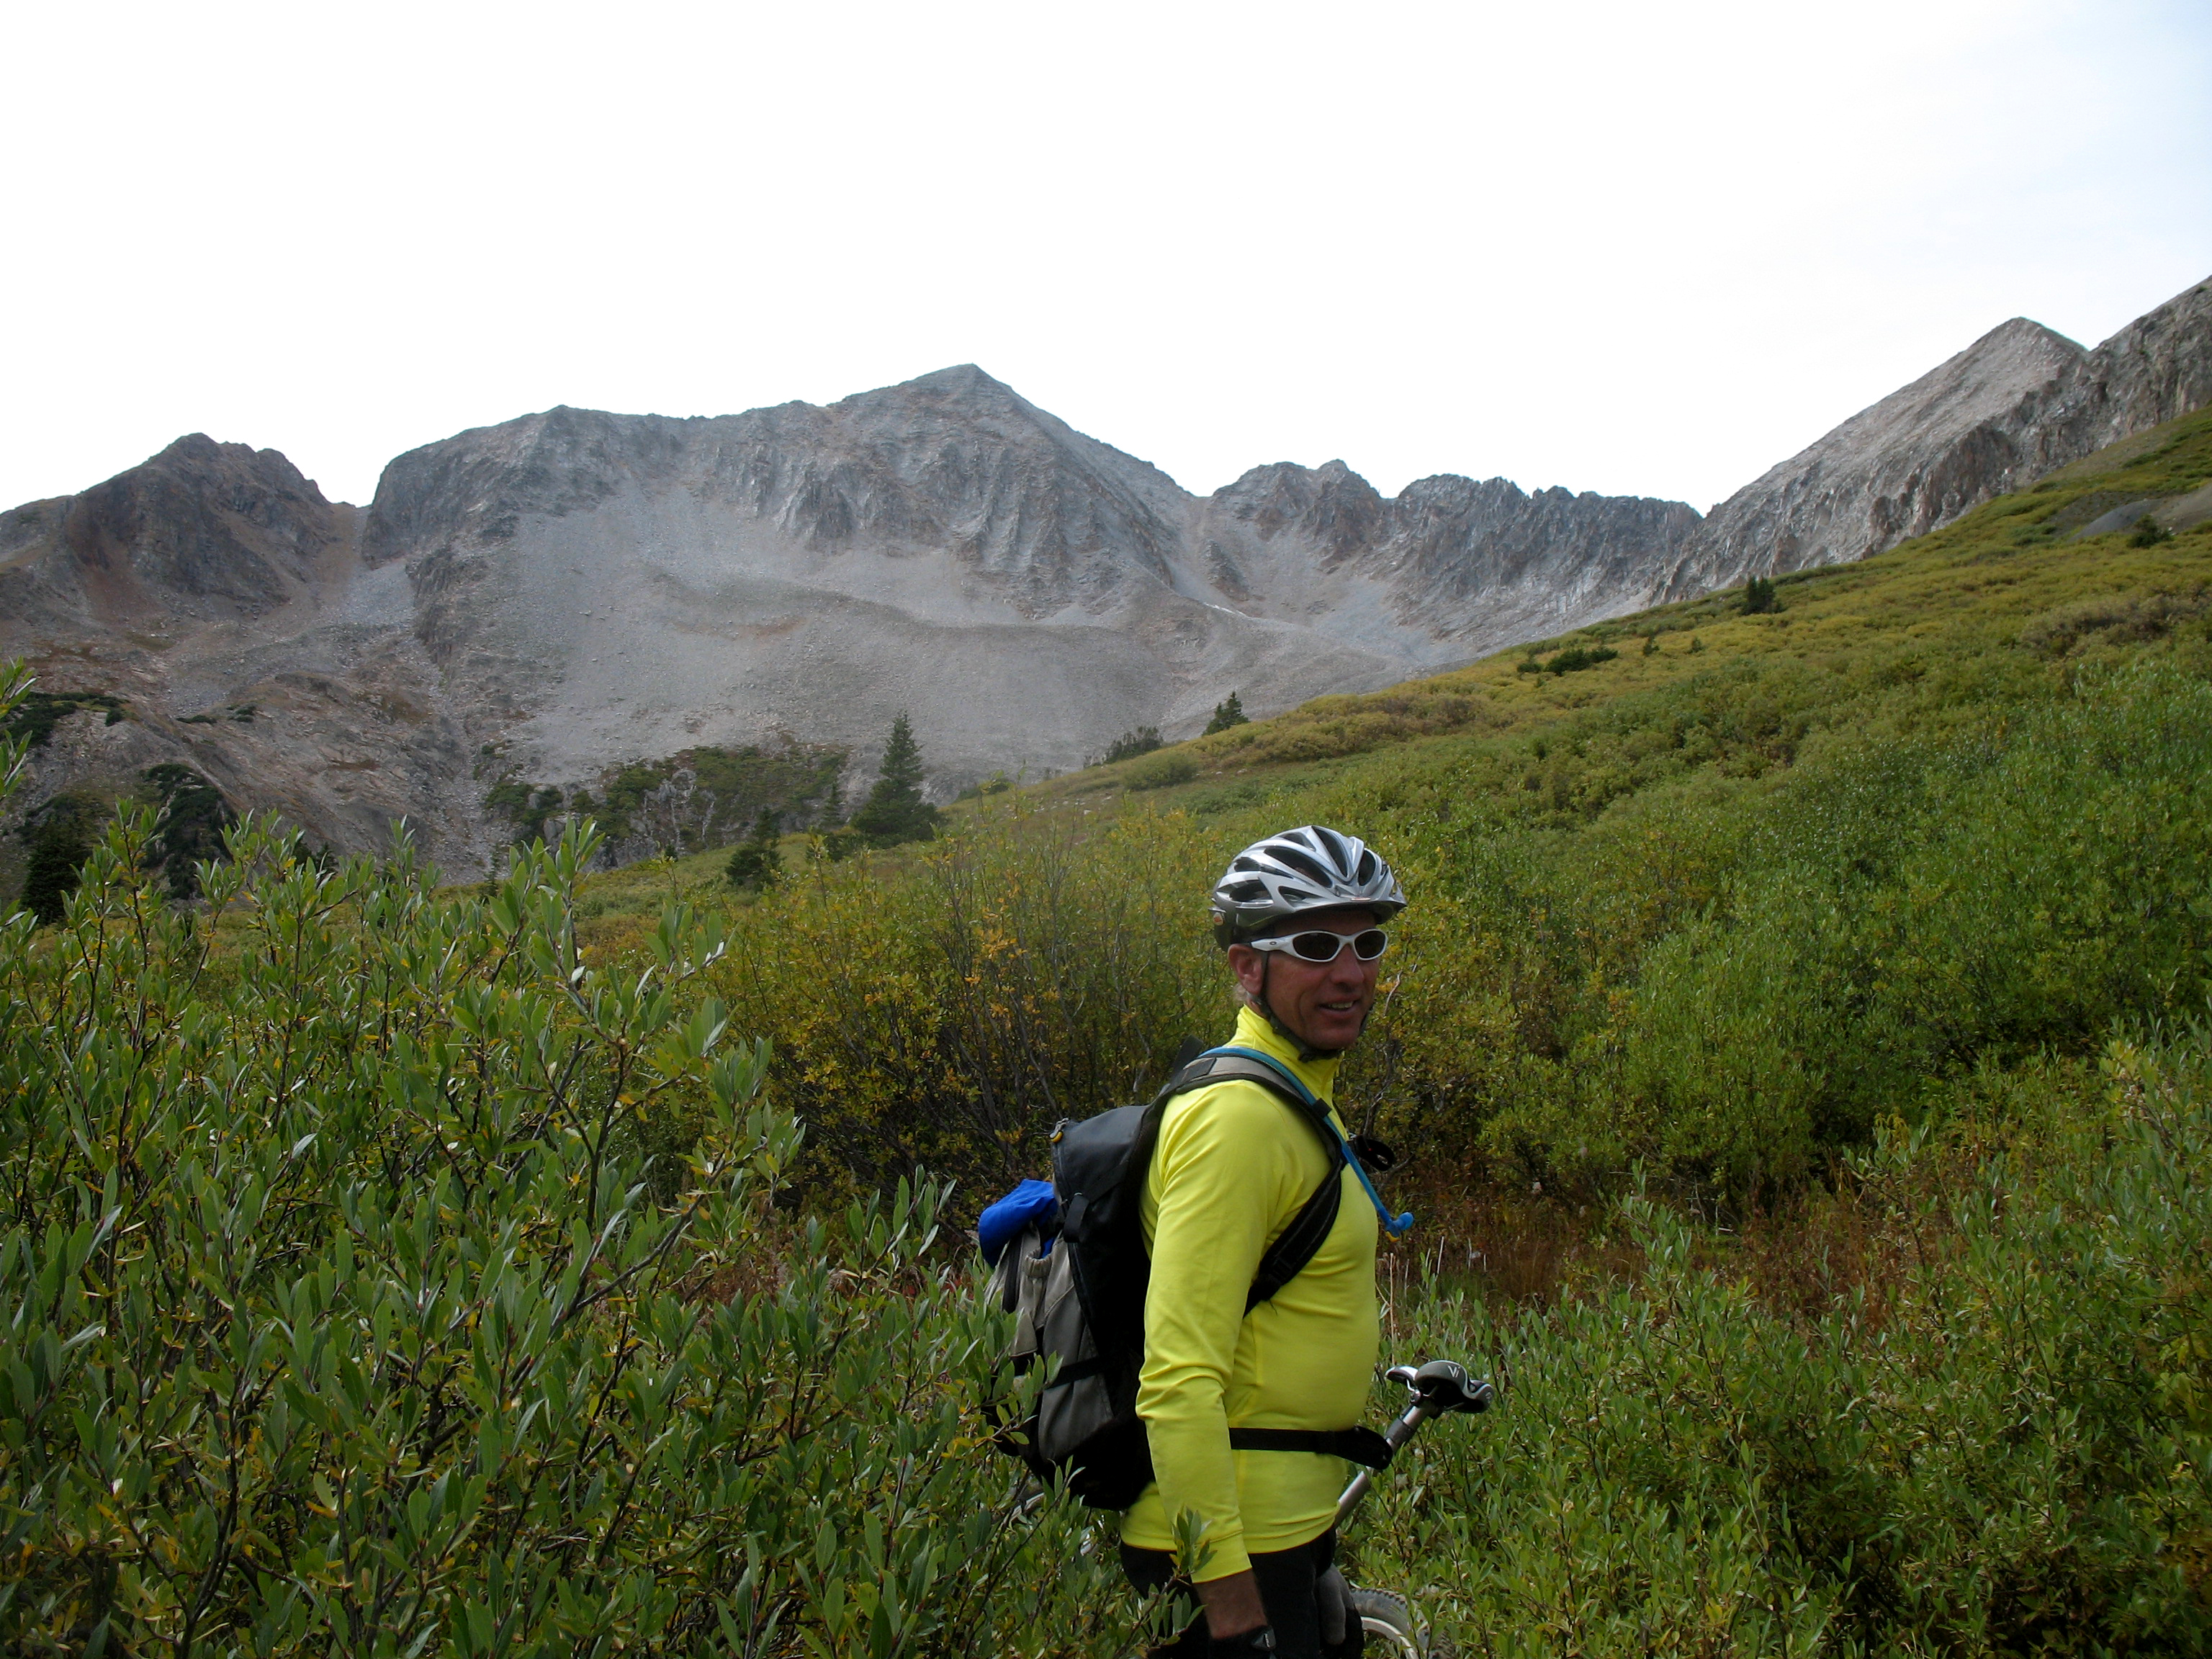 Biking from Aspen to Crested Butte - Taylor & Star Passes